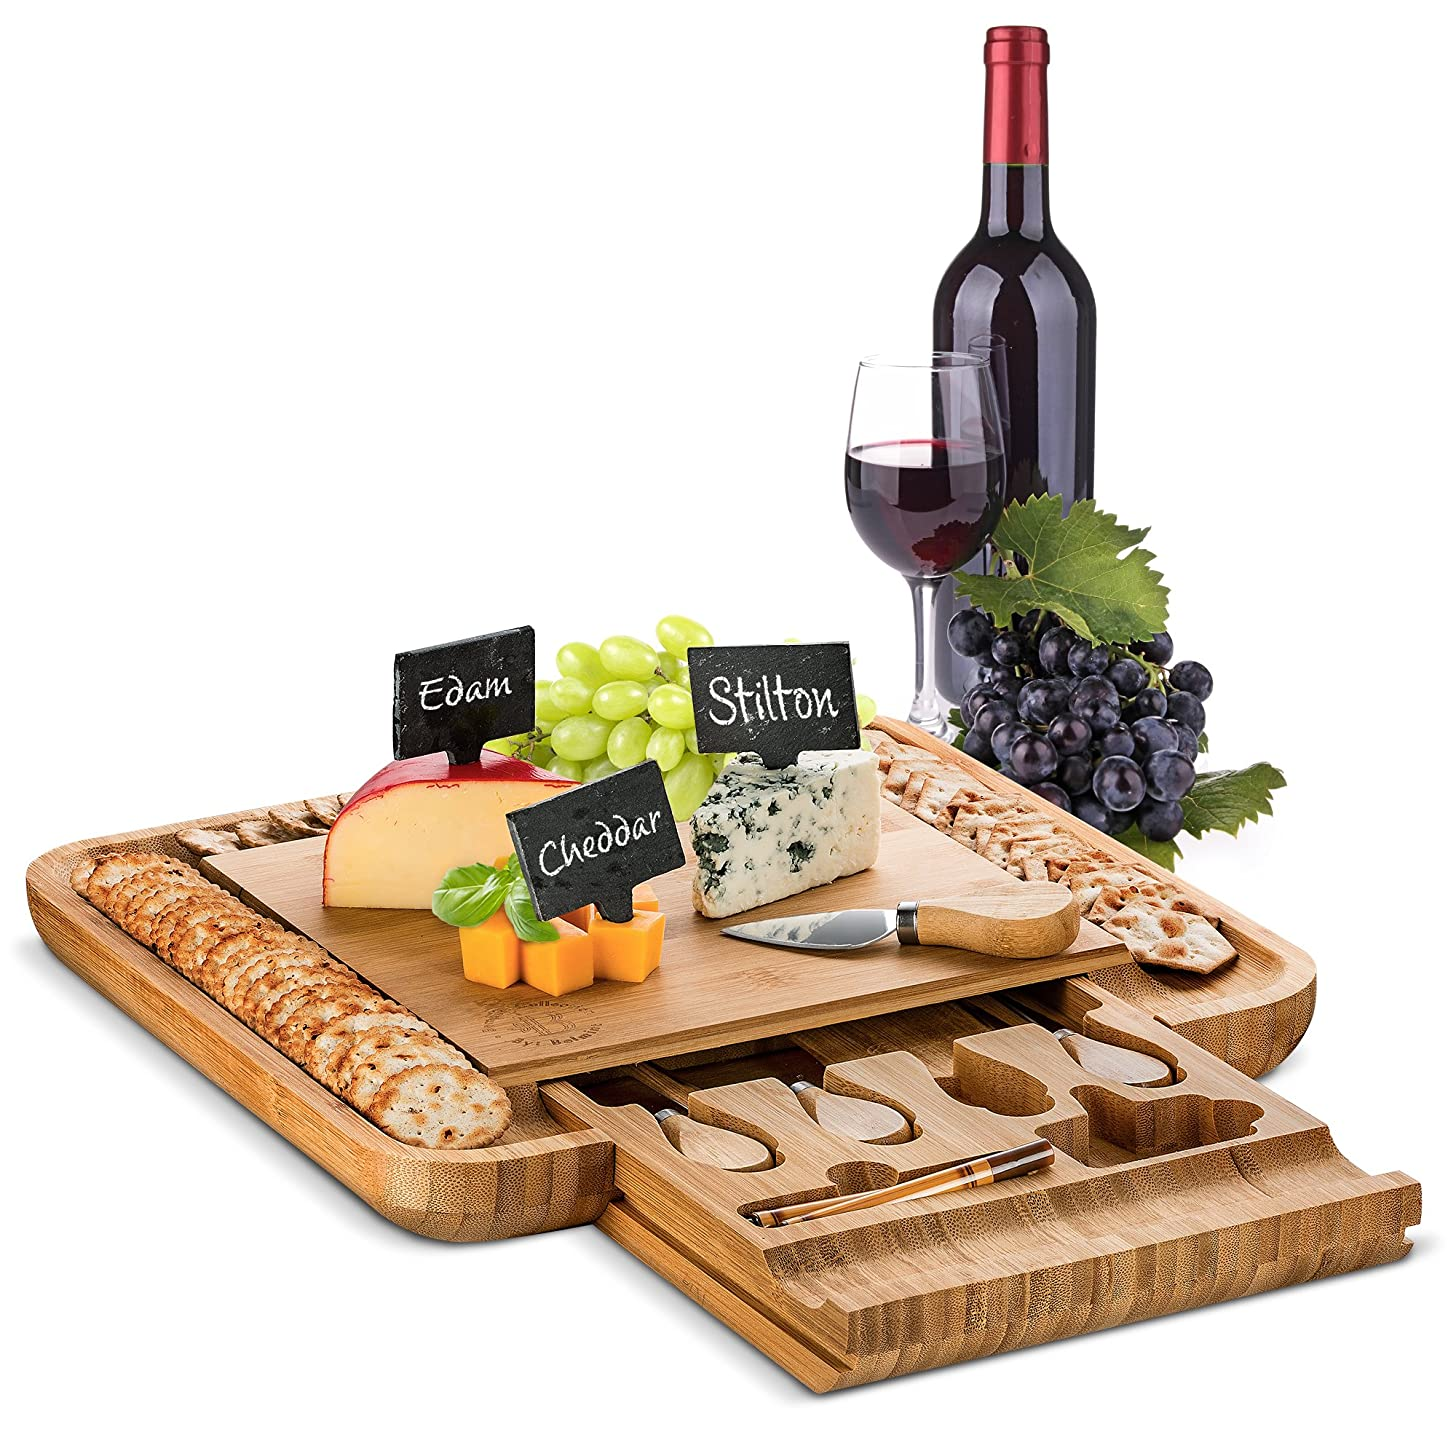 Bamboo Cheese Board with Cutlery Set - Wooden Charcuterie Tray Platter | Includes 4 Serving Utensils, 3 Labels & 2 Chalk Markers | Great Gift Idea